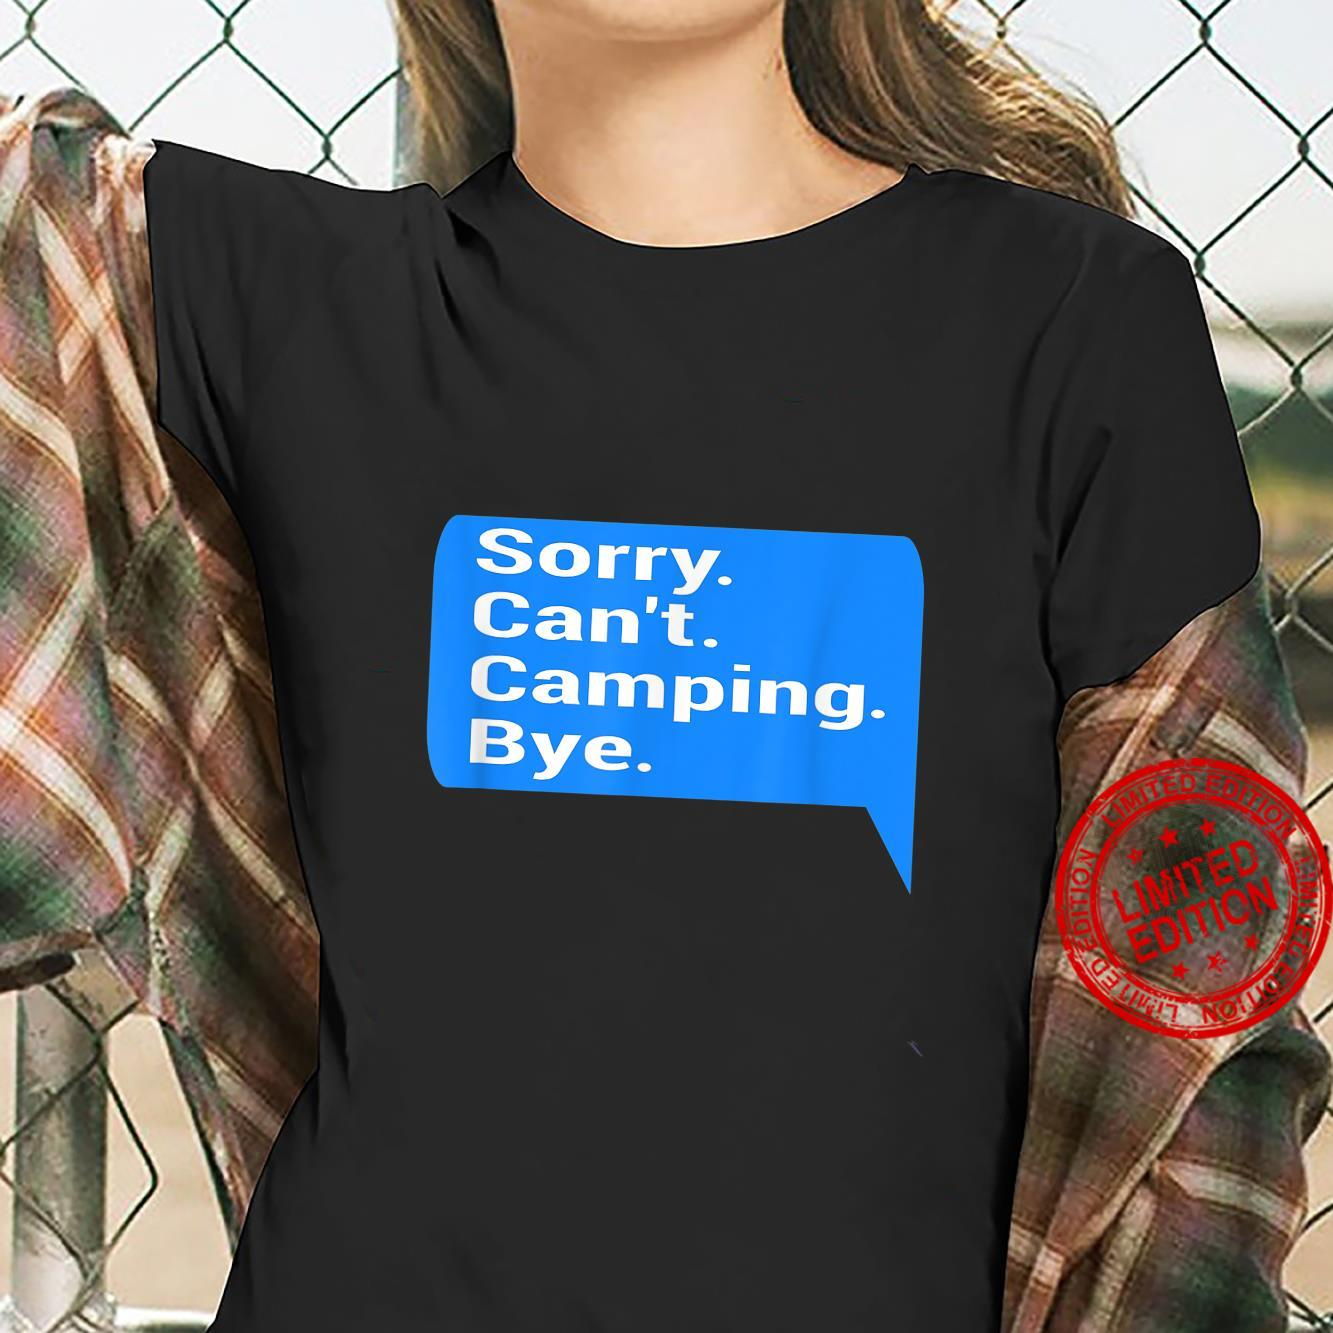 Funny text message design camper, camping fan Shirt ladies tee